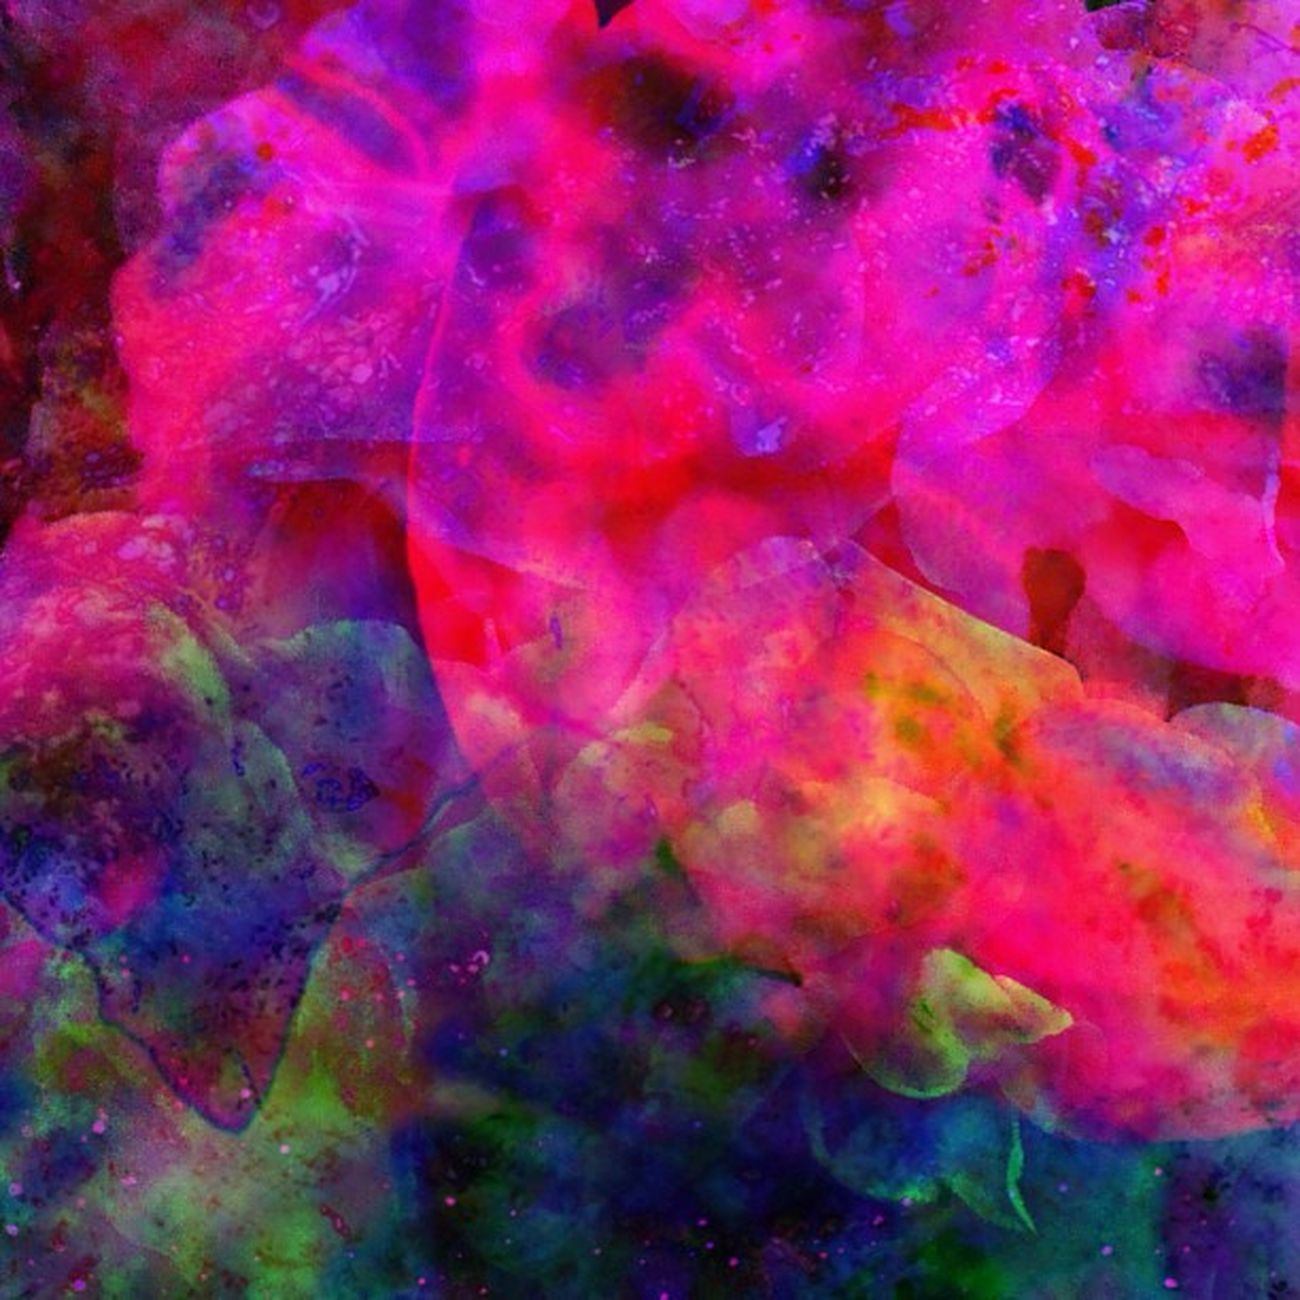 Color Storm (2 of 3) Ig_captures Happycolortrip Abstracto Coloronroids All_shots Dhexpose StayABSTRACT Ace_ Abstractart Deadlydivas Gang_family Ig_one Editjunky Icatching Amselcom Femme_elite Instauno Weareinheaven Igsg You_nique_edits Bd Mi55flowerz Abstracters_anonymous Edit_fever Abstract_buff Abstractobsession Instaabstract